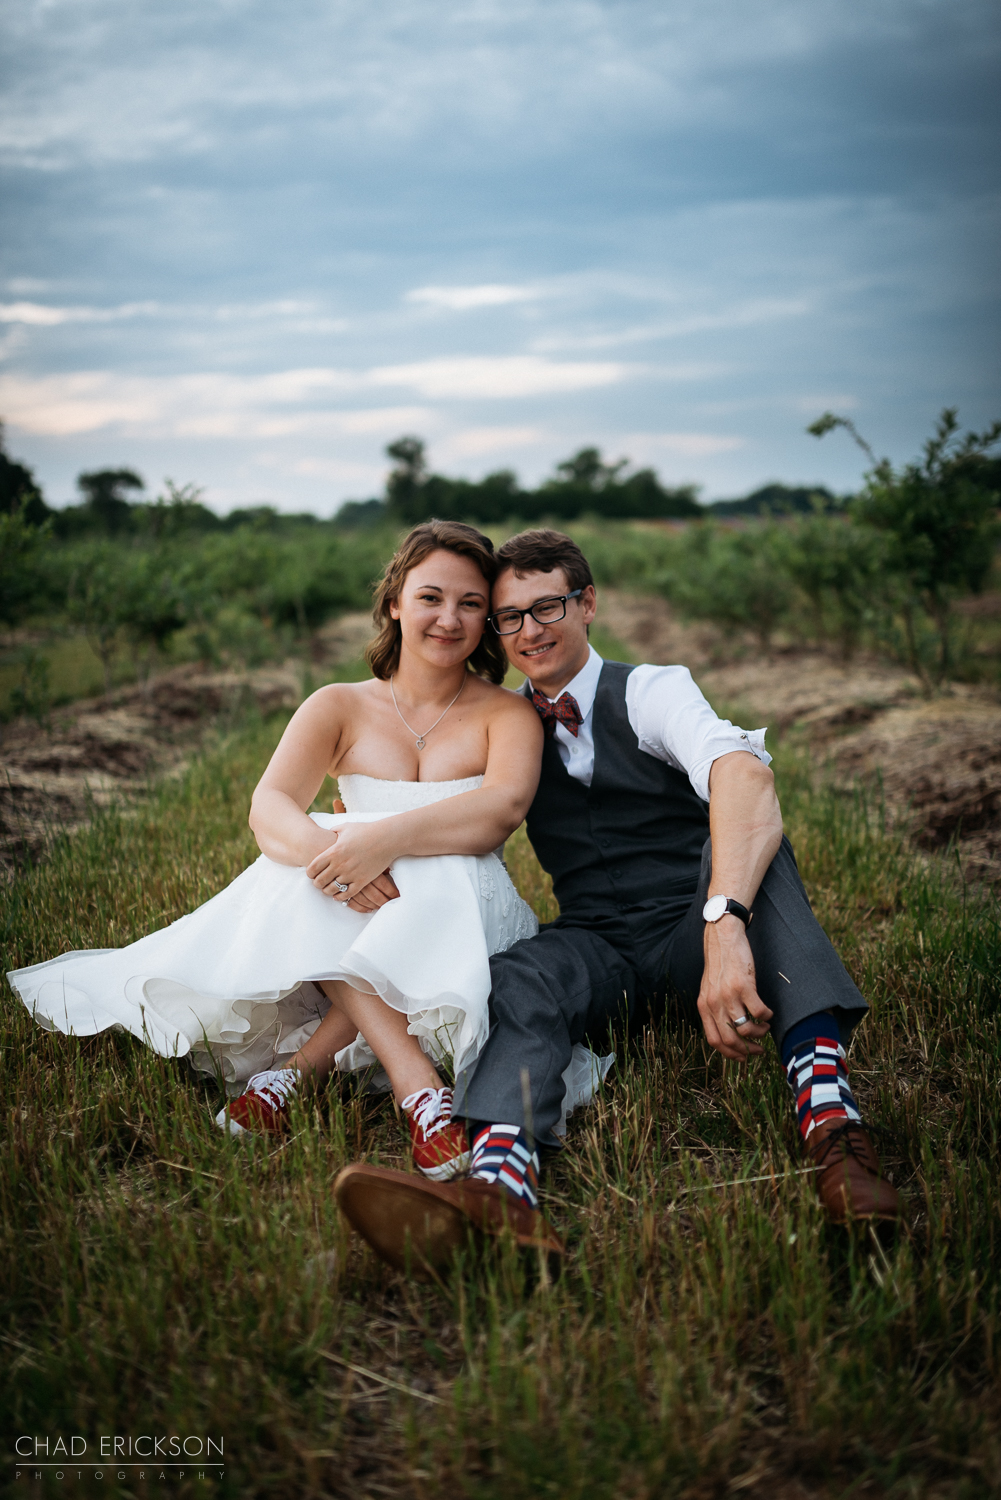 Adorable sunset wedding portrait at The Grove